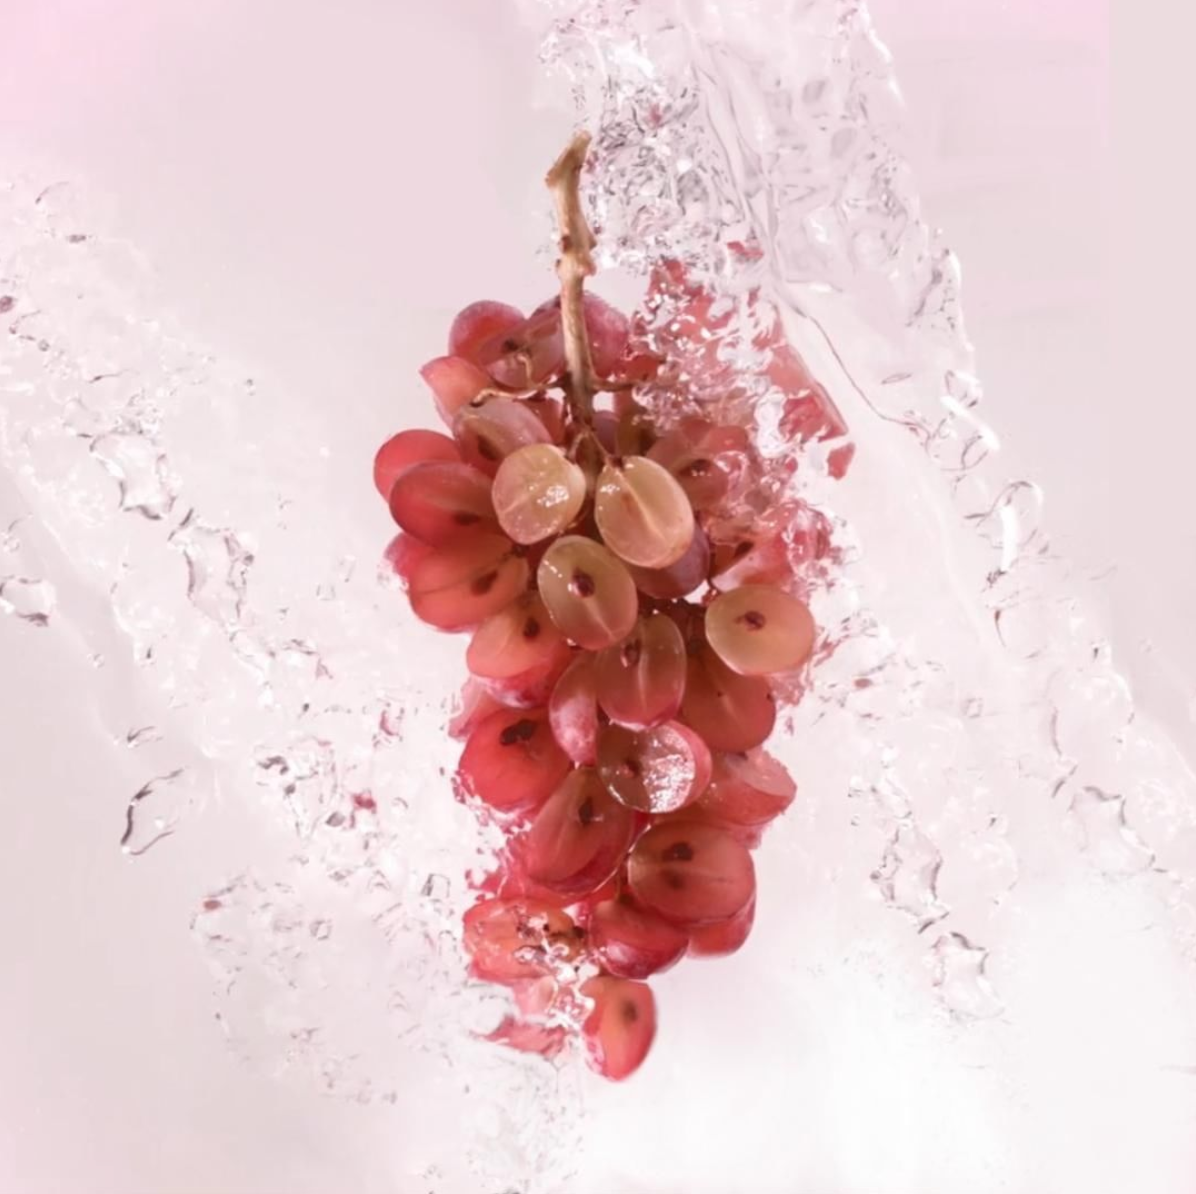 CAUDALIE VINOSOURCE - We crafted an impactful top shot campaign to promote a new Vinosource concept globally.